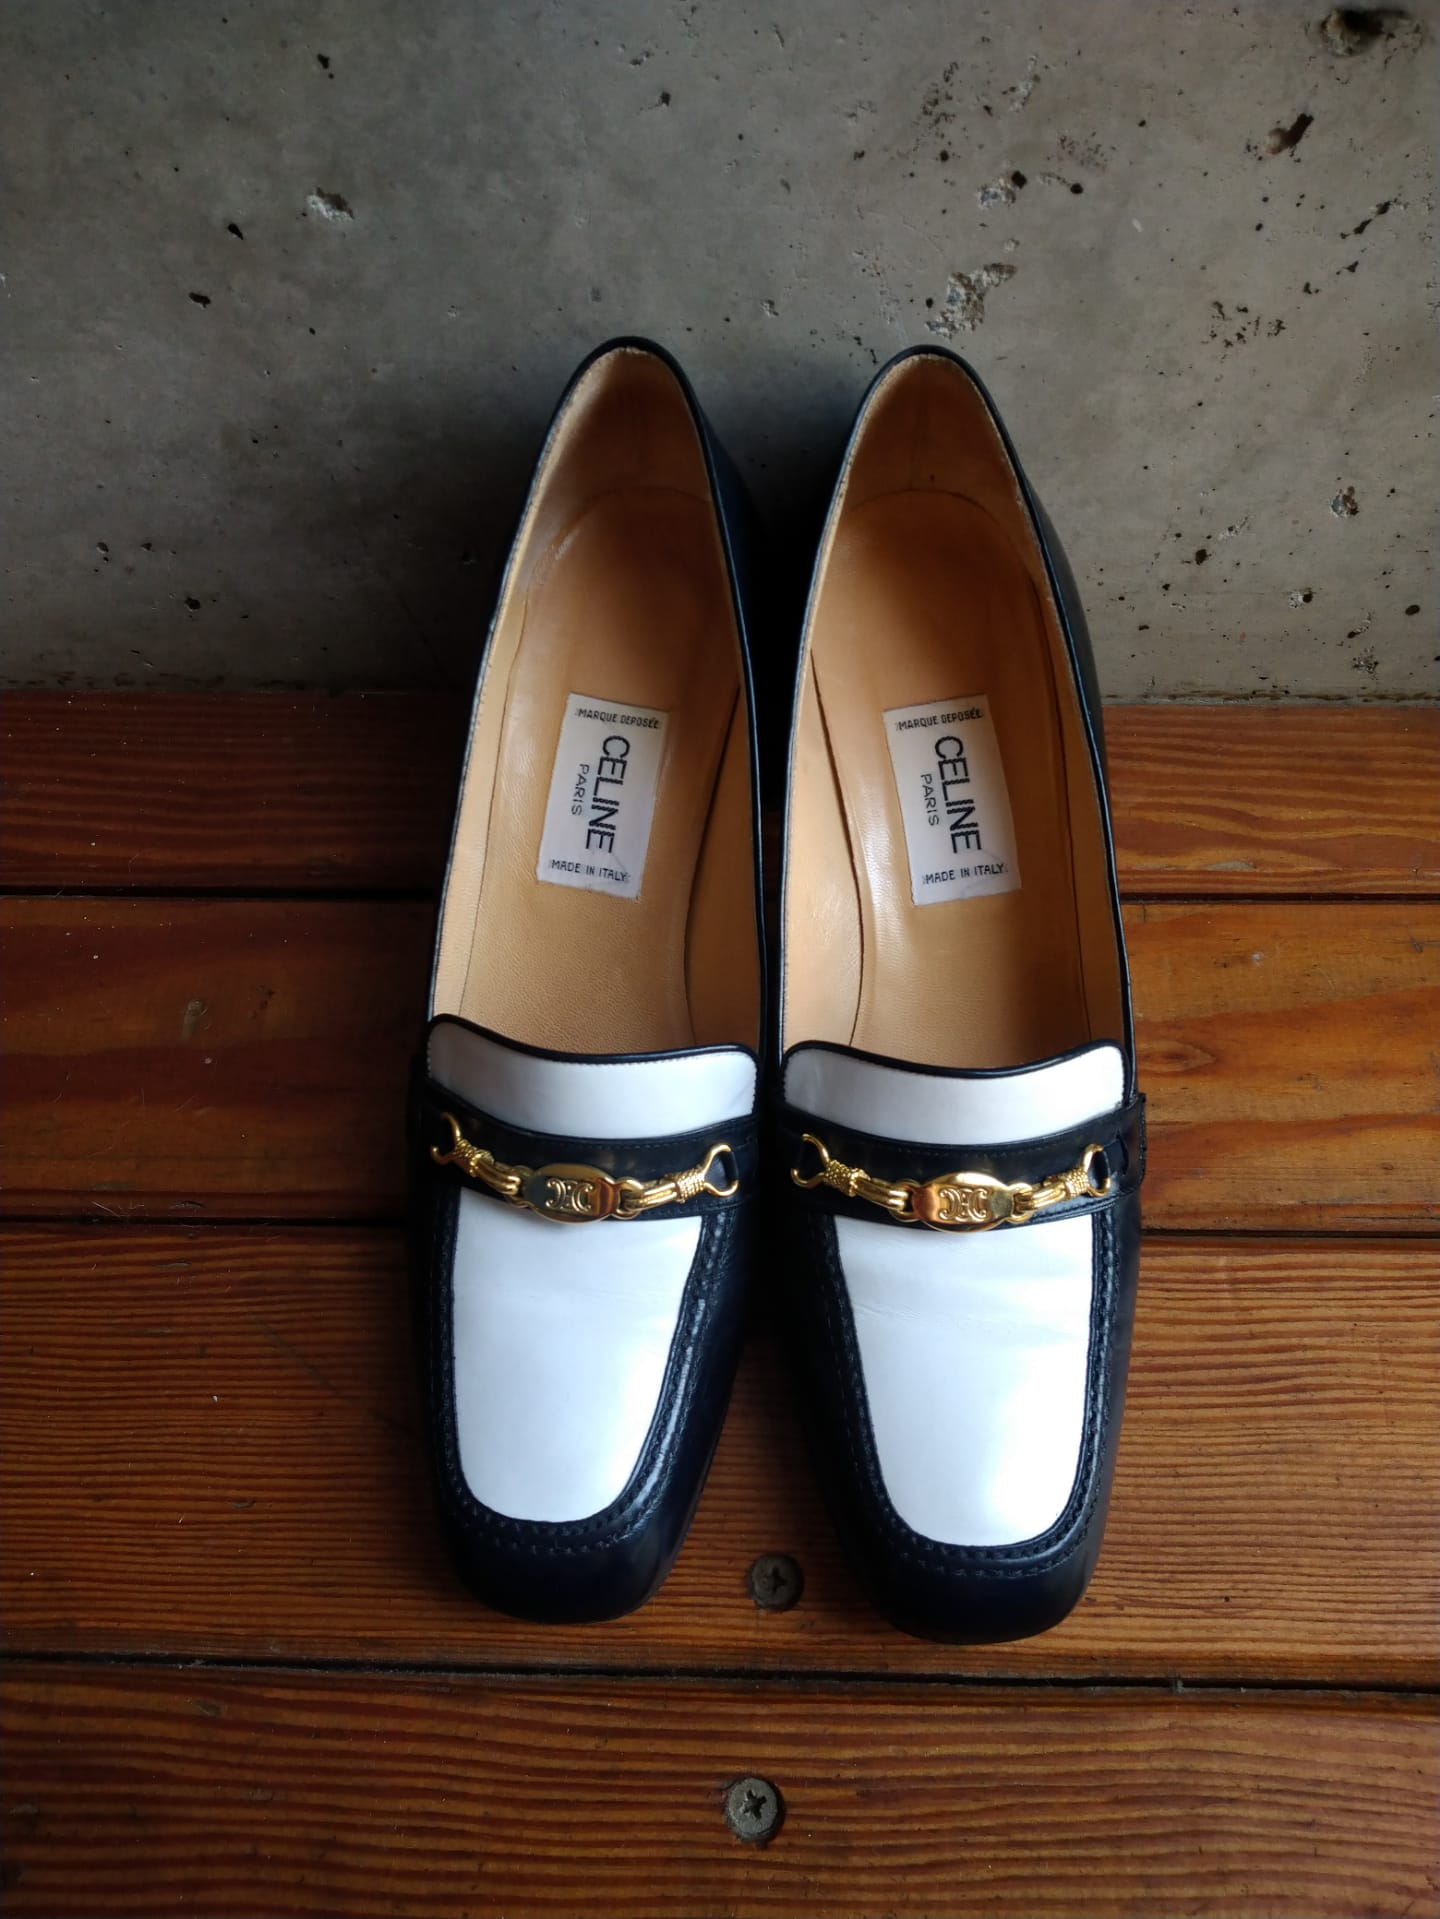 Celine navy blue moccassins